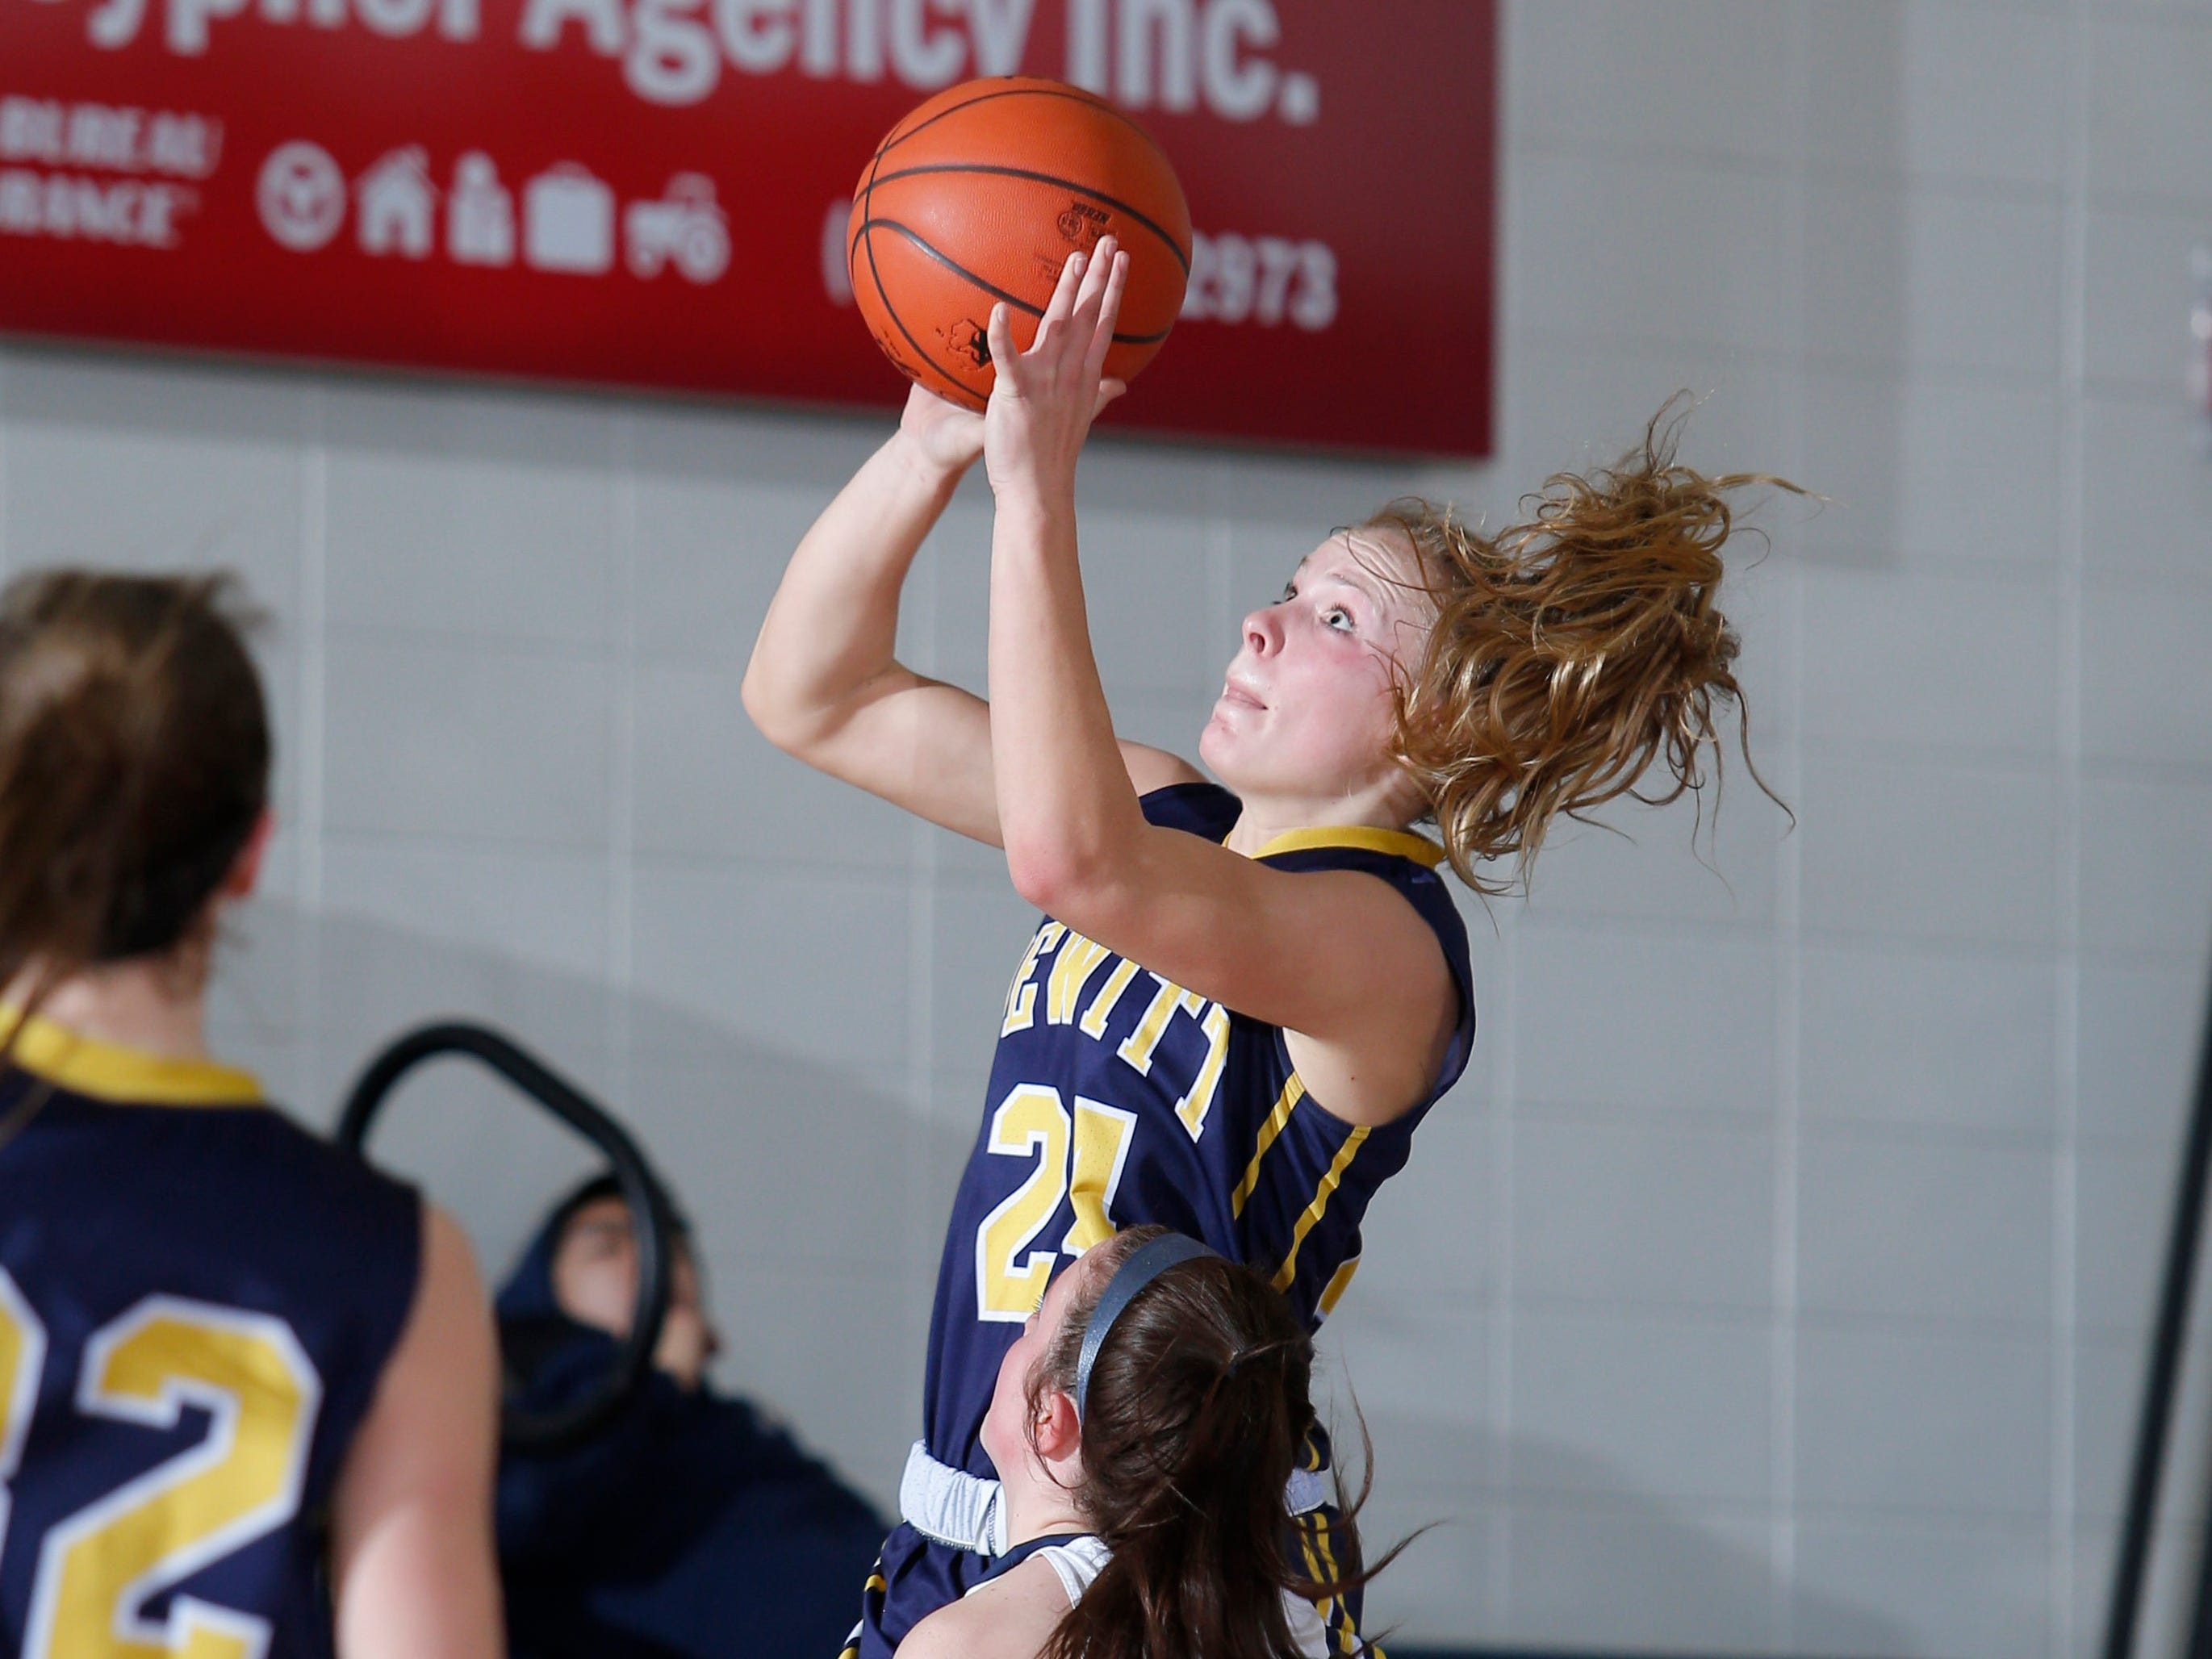 DeWitt's Annie McIntosh puts up a driving shot against Grand Ledge's Kylee Pier (12), Tuesday, Jan. 15, 2019, in Grand Ledge, Mich.